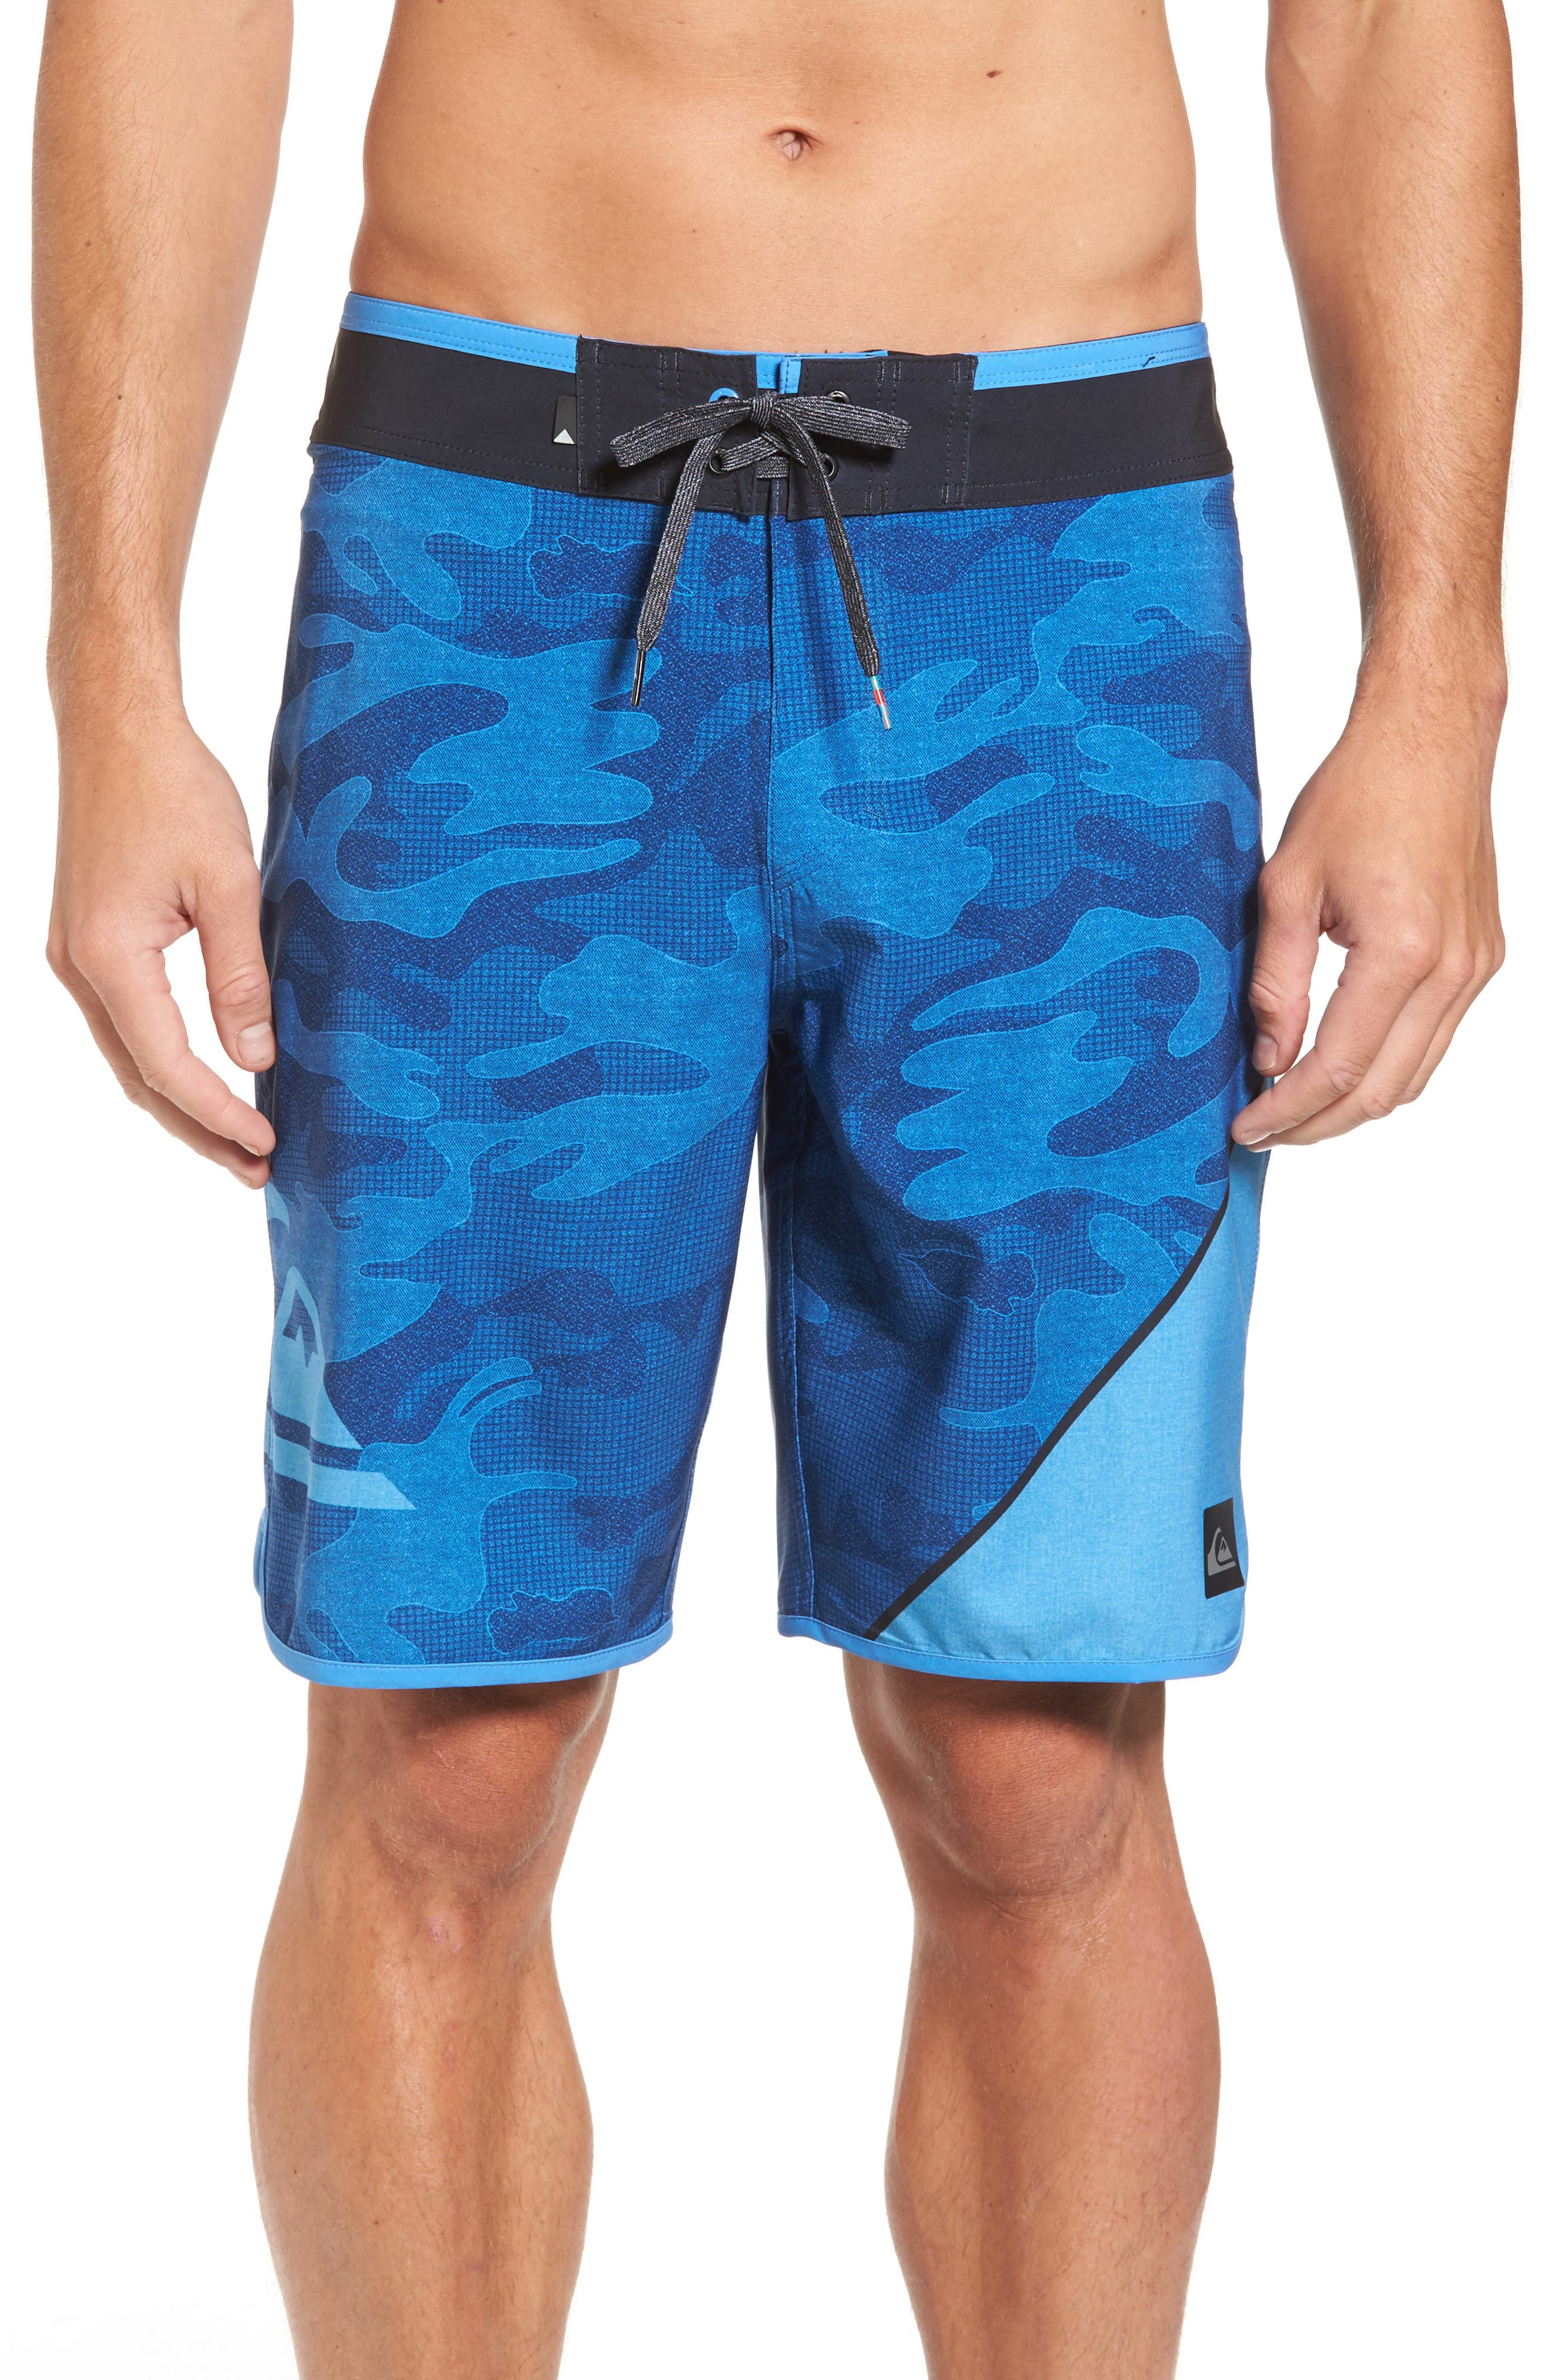 New Wave Everyday Board Shorts,                         Main,                         color, Blue